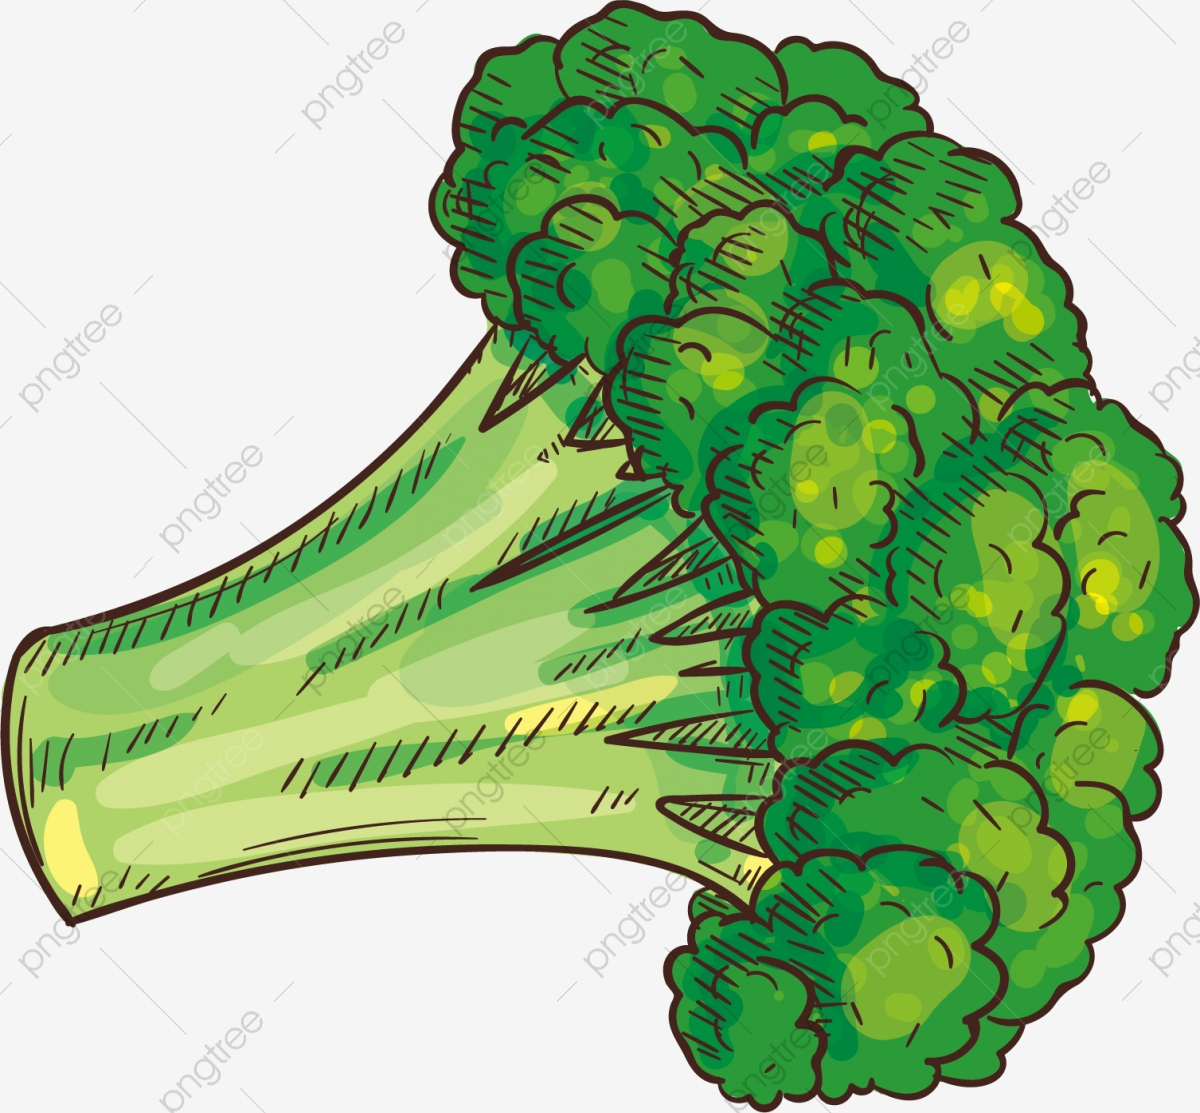 Cauliflower, Vegetables, Food PNG Transparent Clipart Image and PSD.